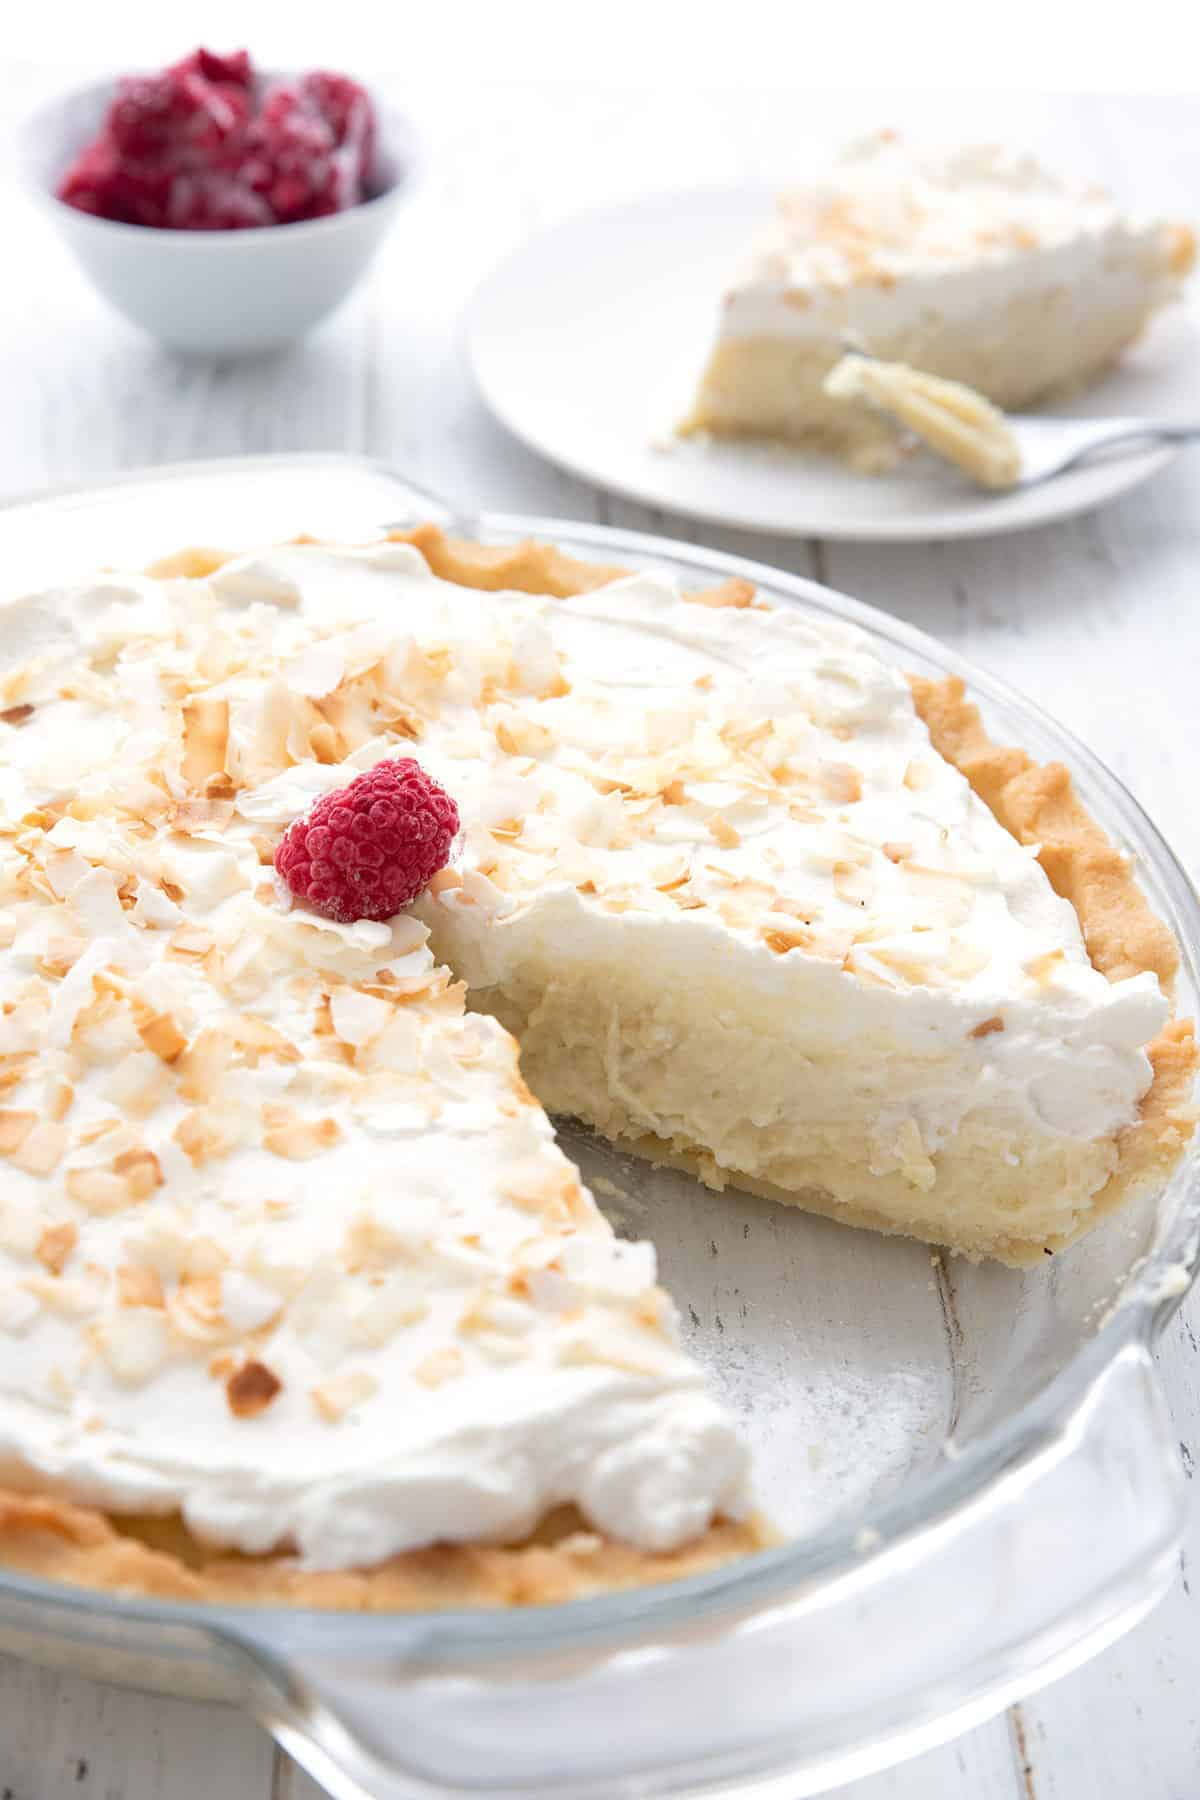 A sugar free coconut cream pie with a slice taken out of it.